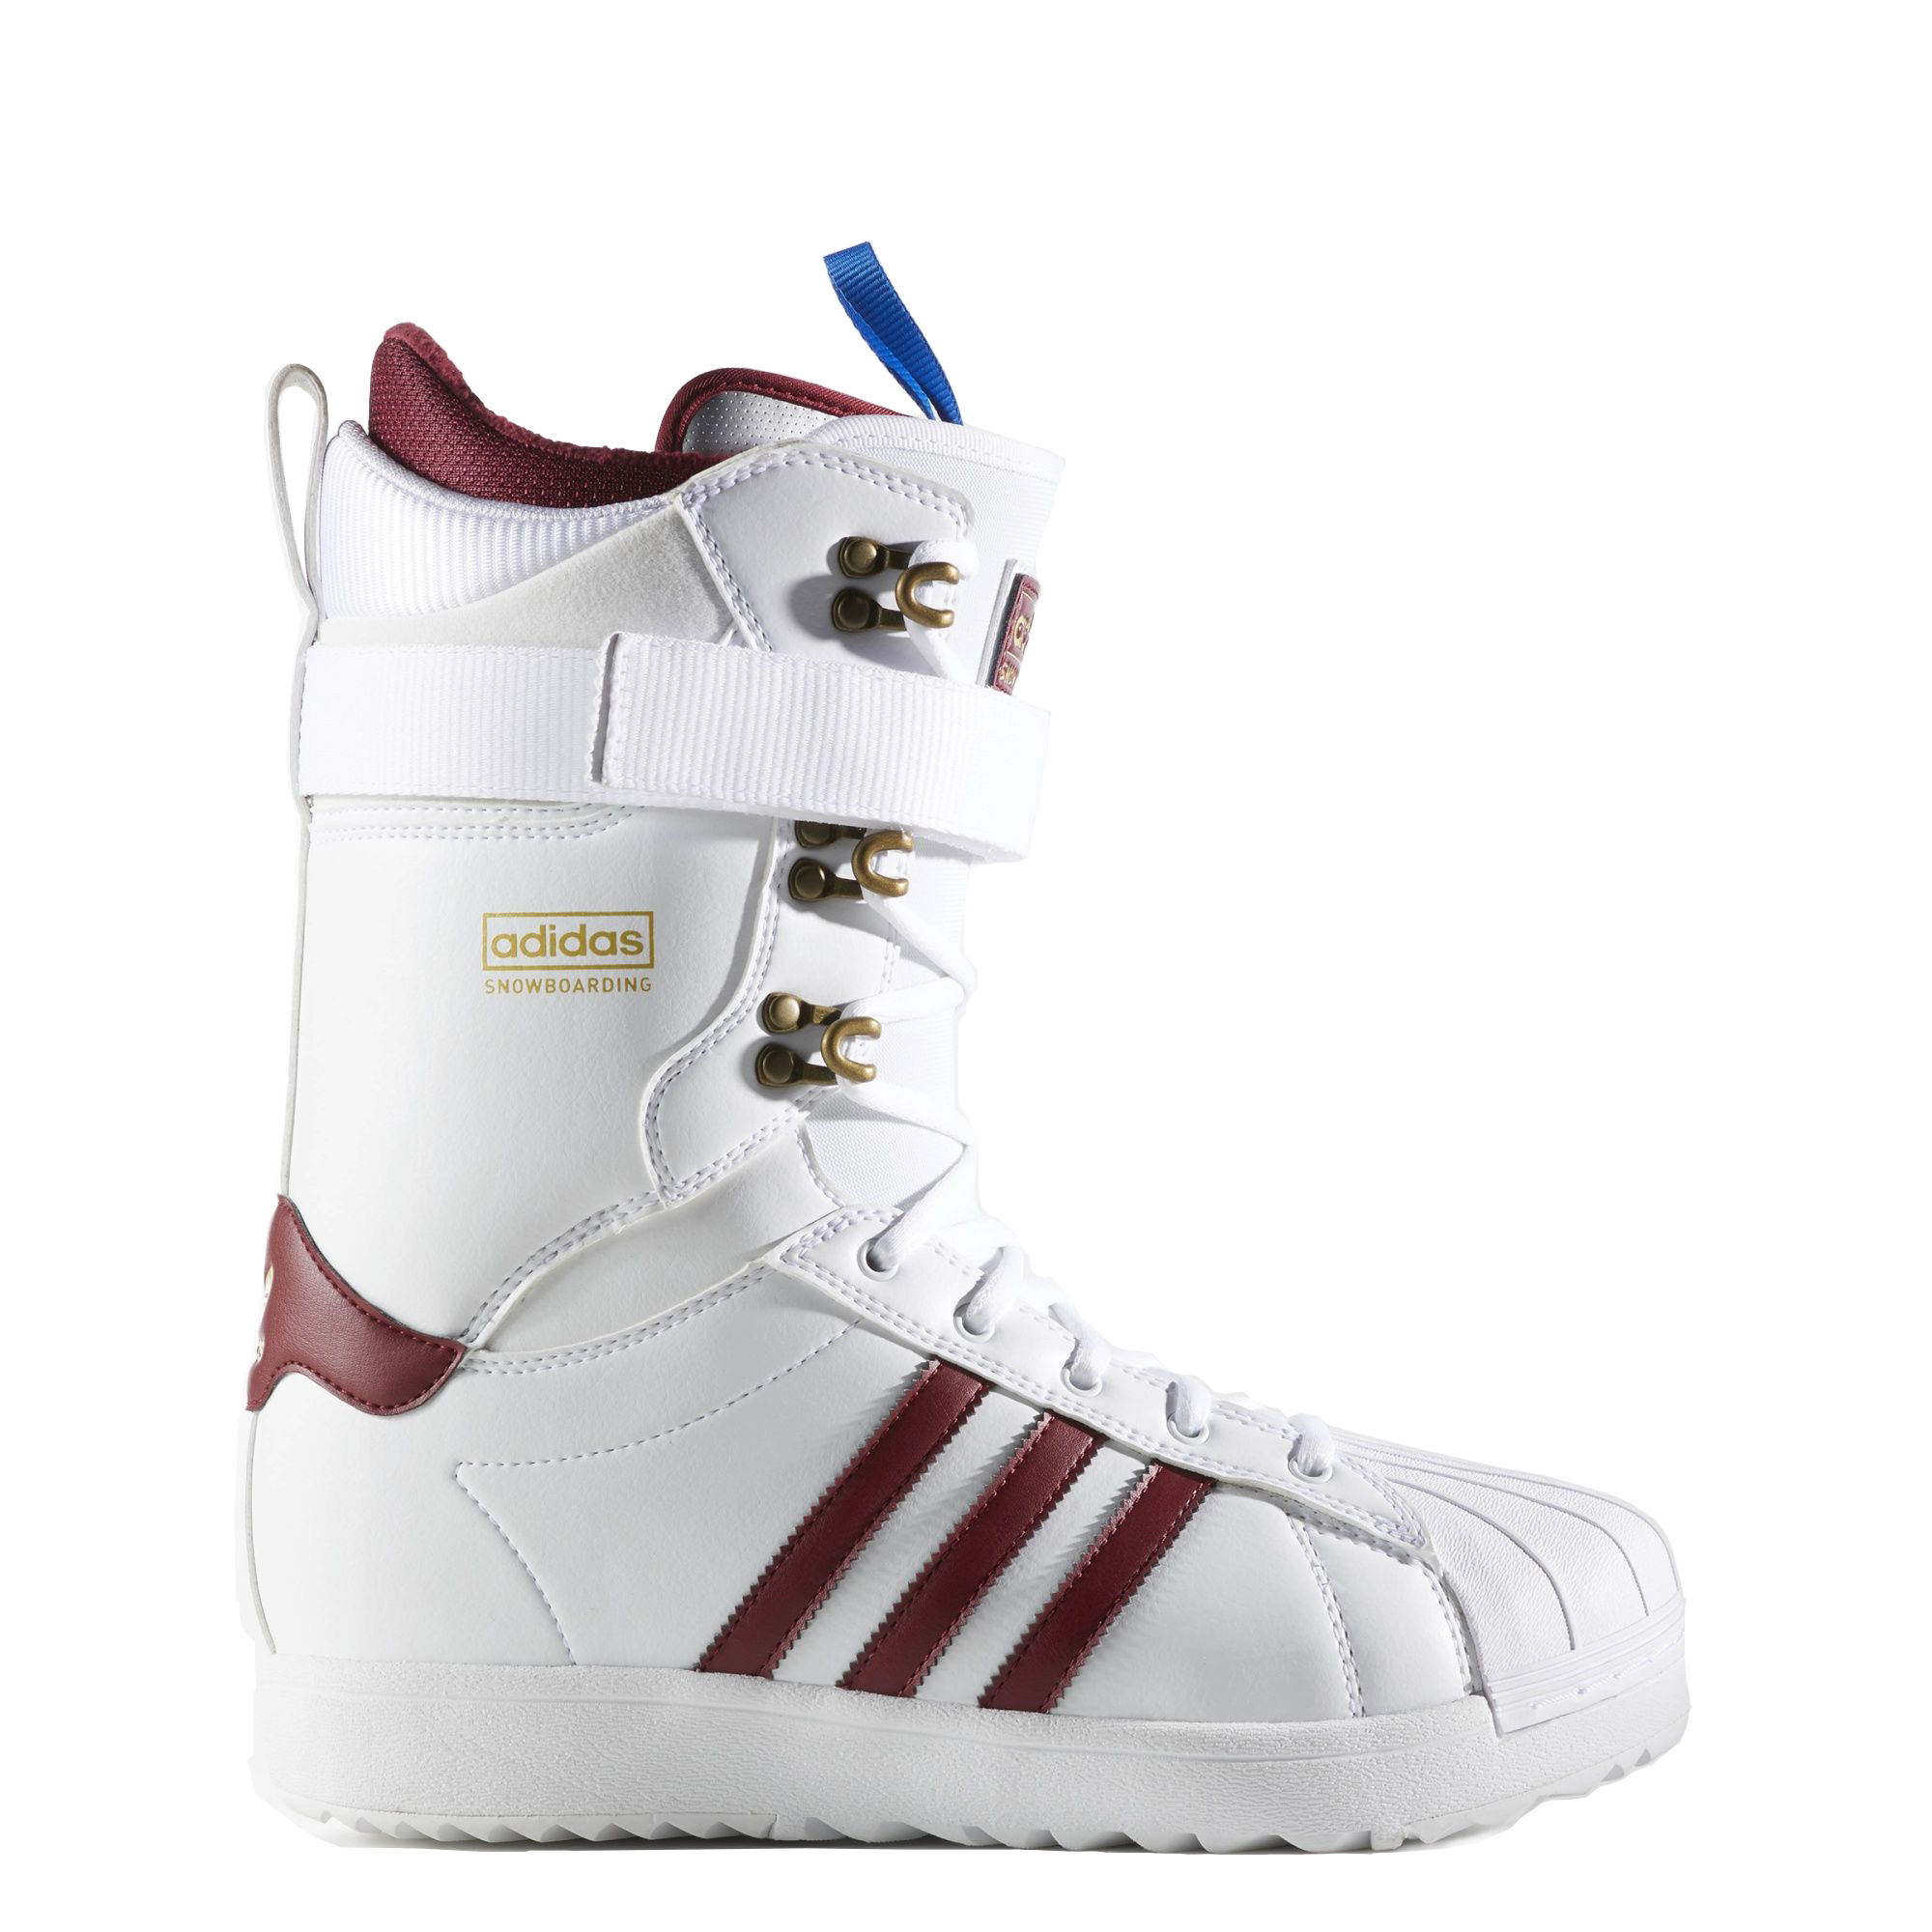 best service 91670 6e9d2 Adidas Superstar ADV Snowboard Boots 2018     New Stuff   The Board Basement